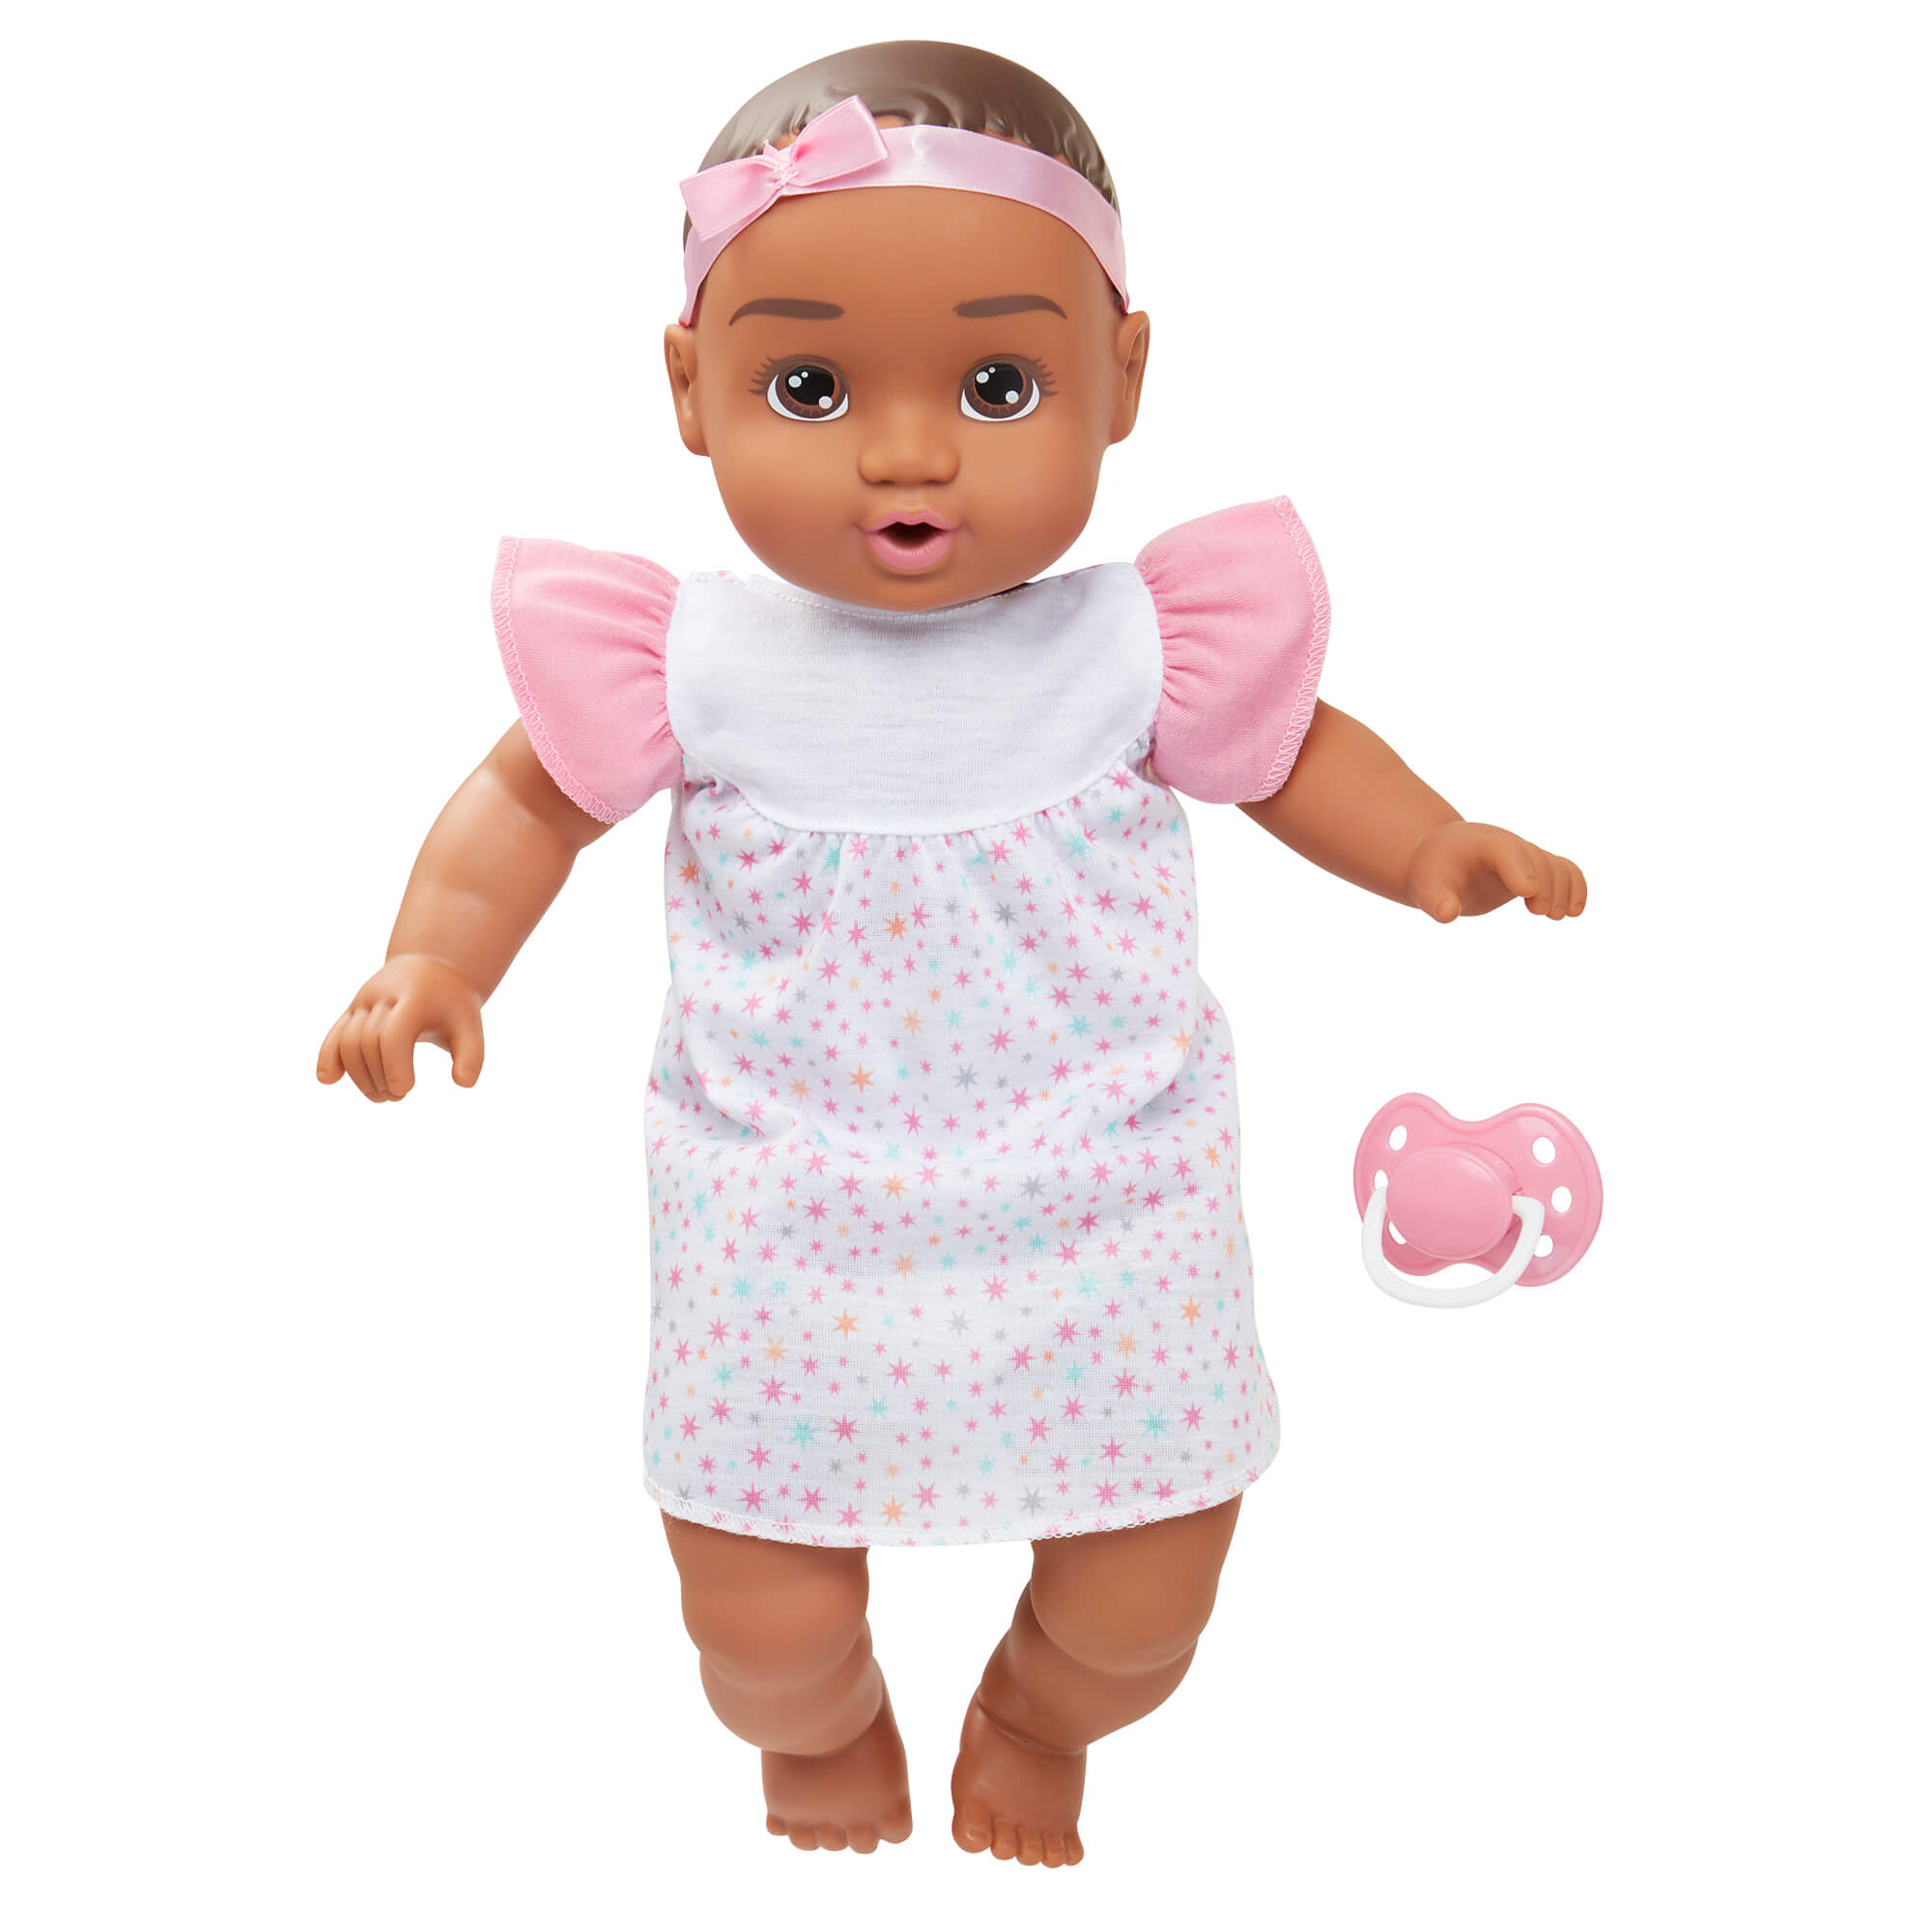 Perfectly Cute Baby 14 inch My Sweet Baby Girl Doll